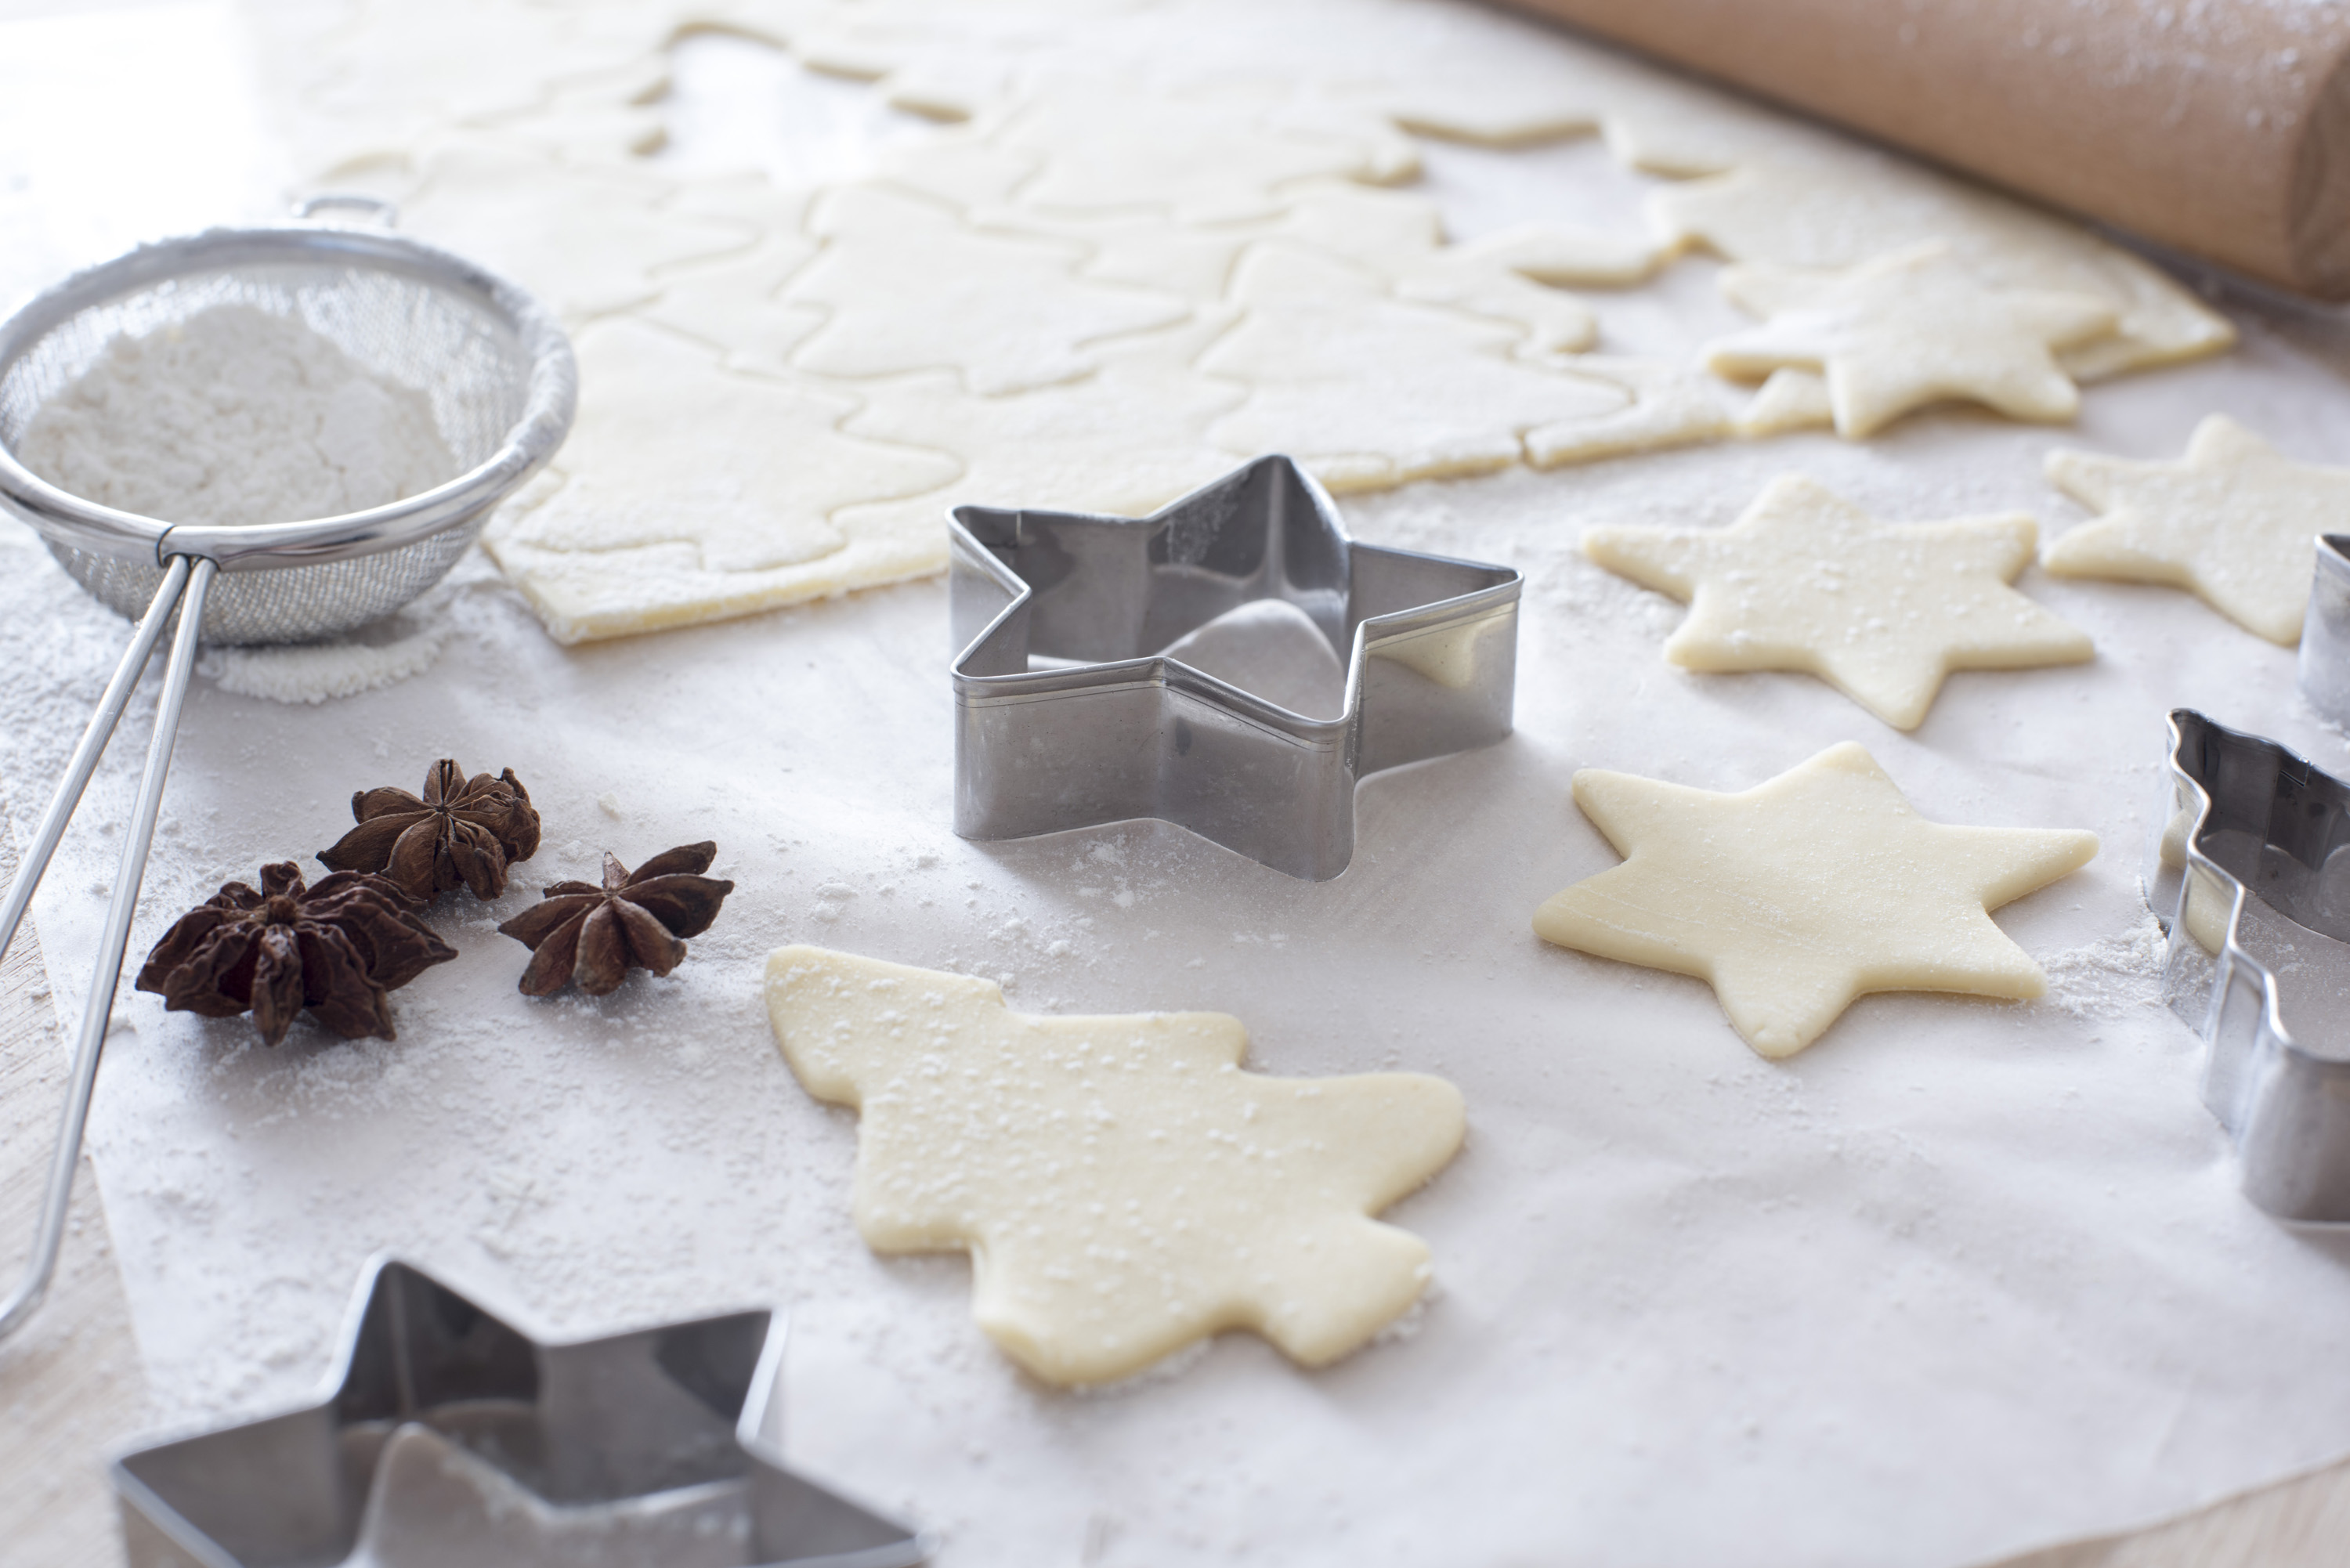 Work space for baking with cookie sheet, rolling pin and shaped cutters beside star anise